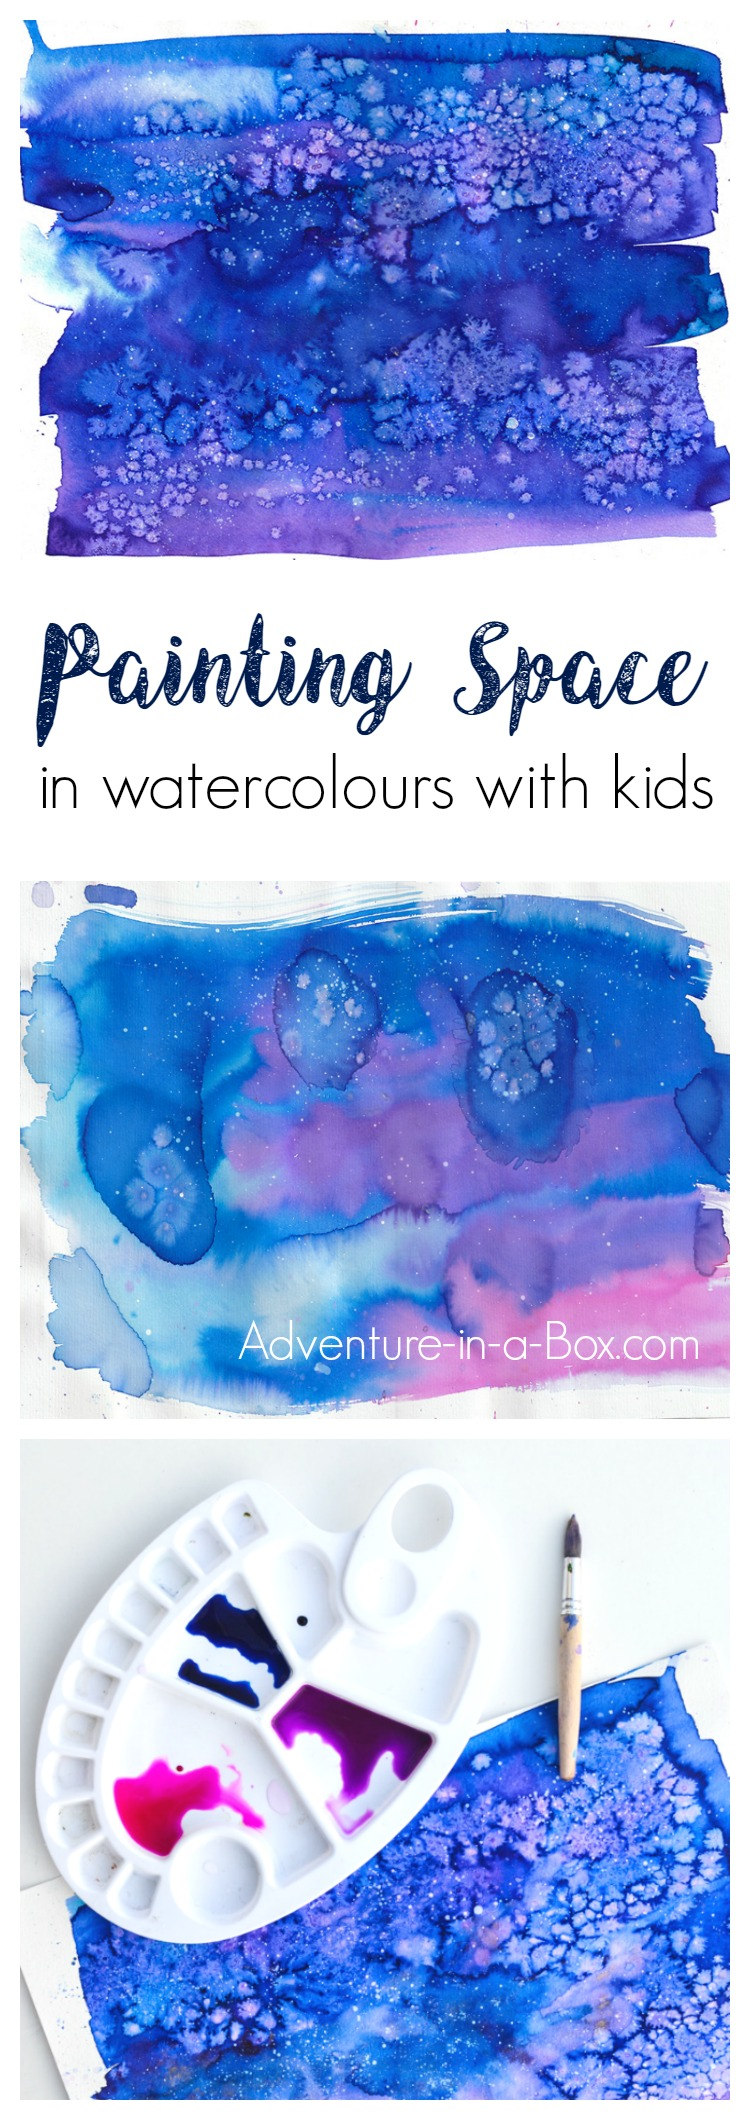 Learn how to paint space with watercolours in a simple way and fun way that would appeal to children. This technique includes the use of pipettes, which is always a hit in our house!